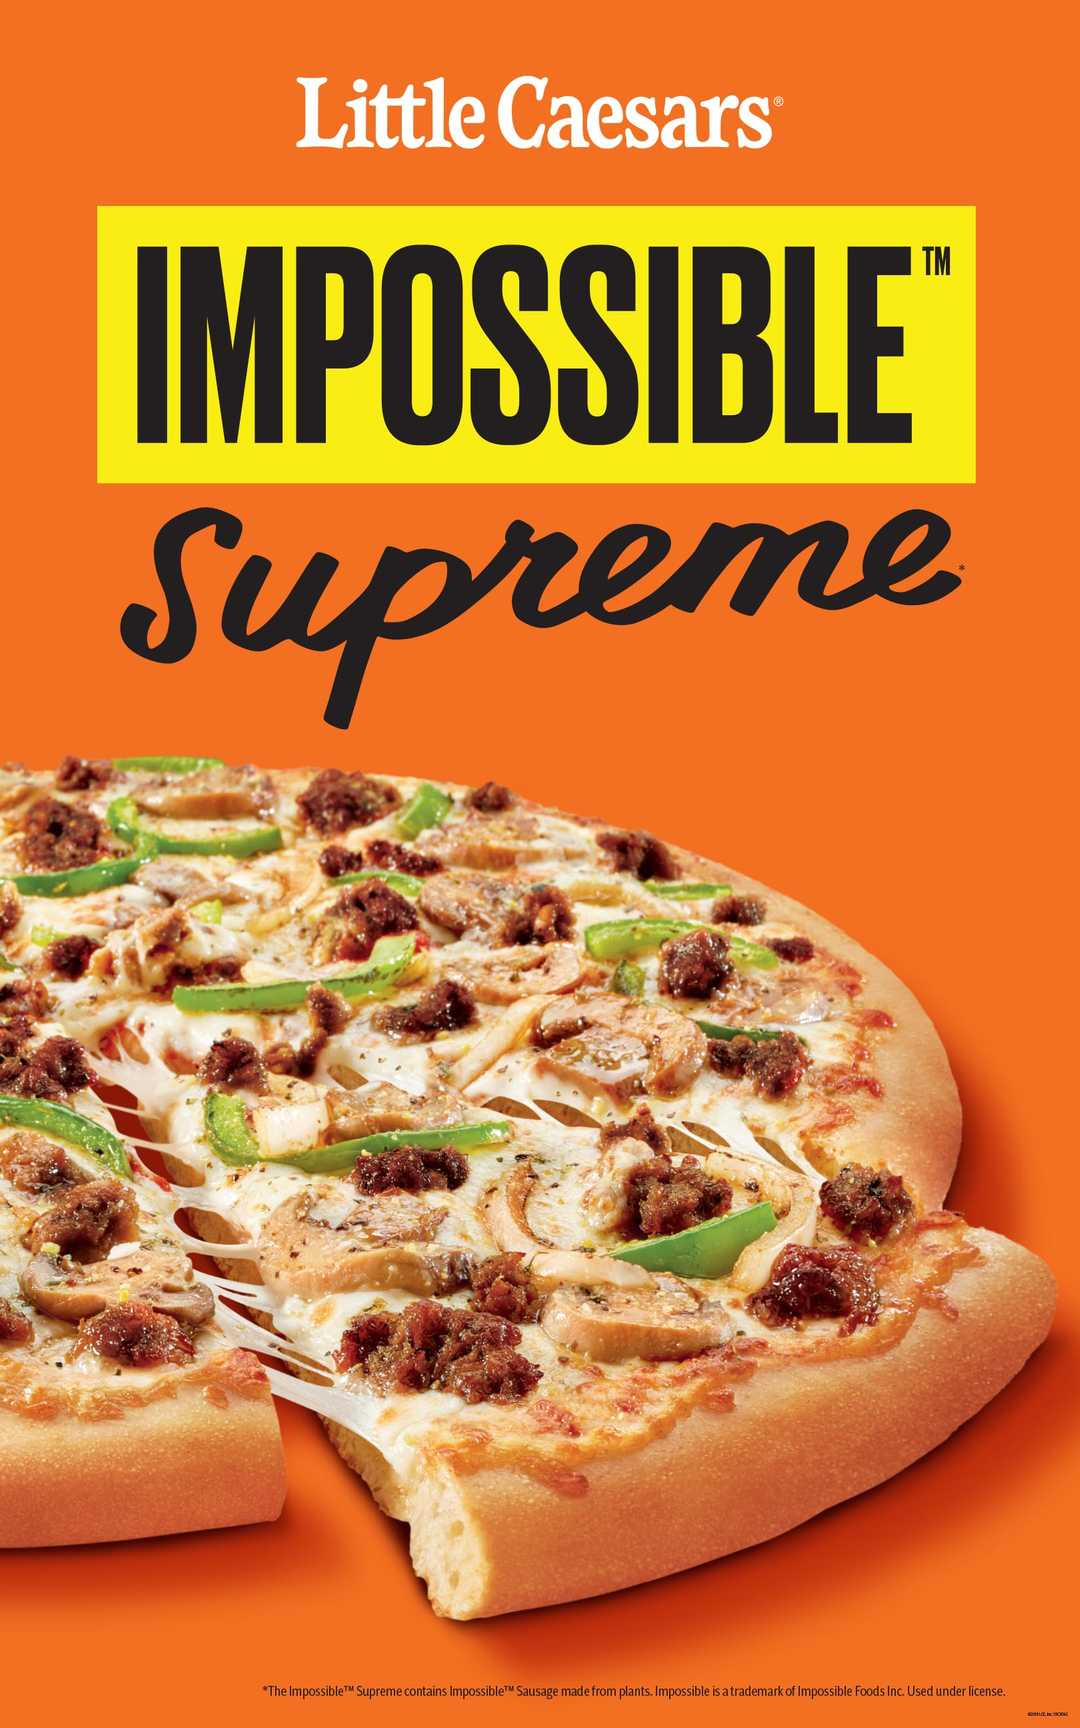 Little Caesars tests Impossible Supreme pizza with plant-based sausage